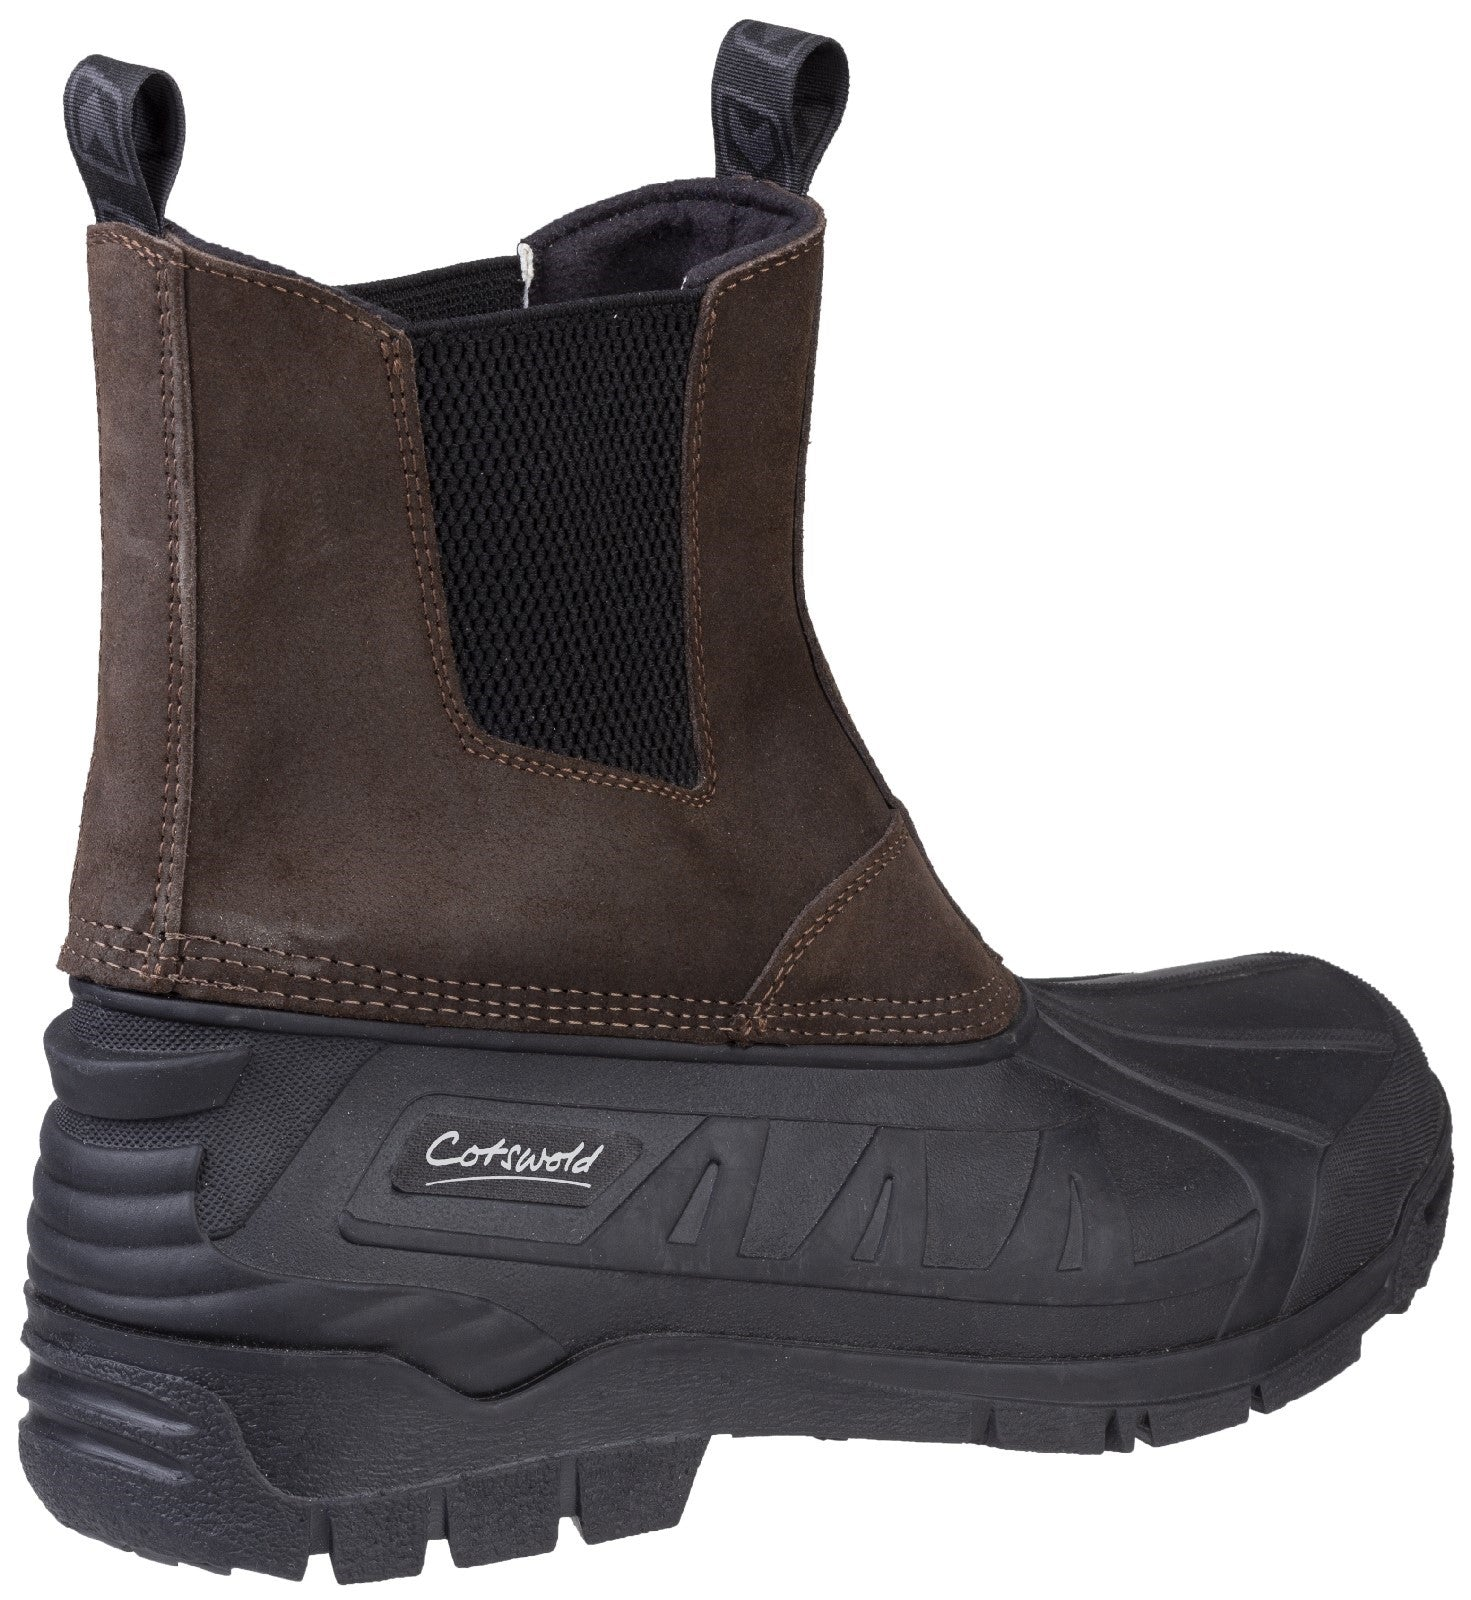 Cotswold Men's Whiteway Hybrid Dealer Boot Brown 26152